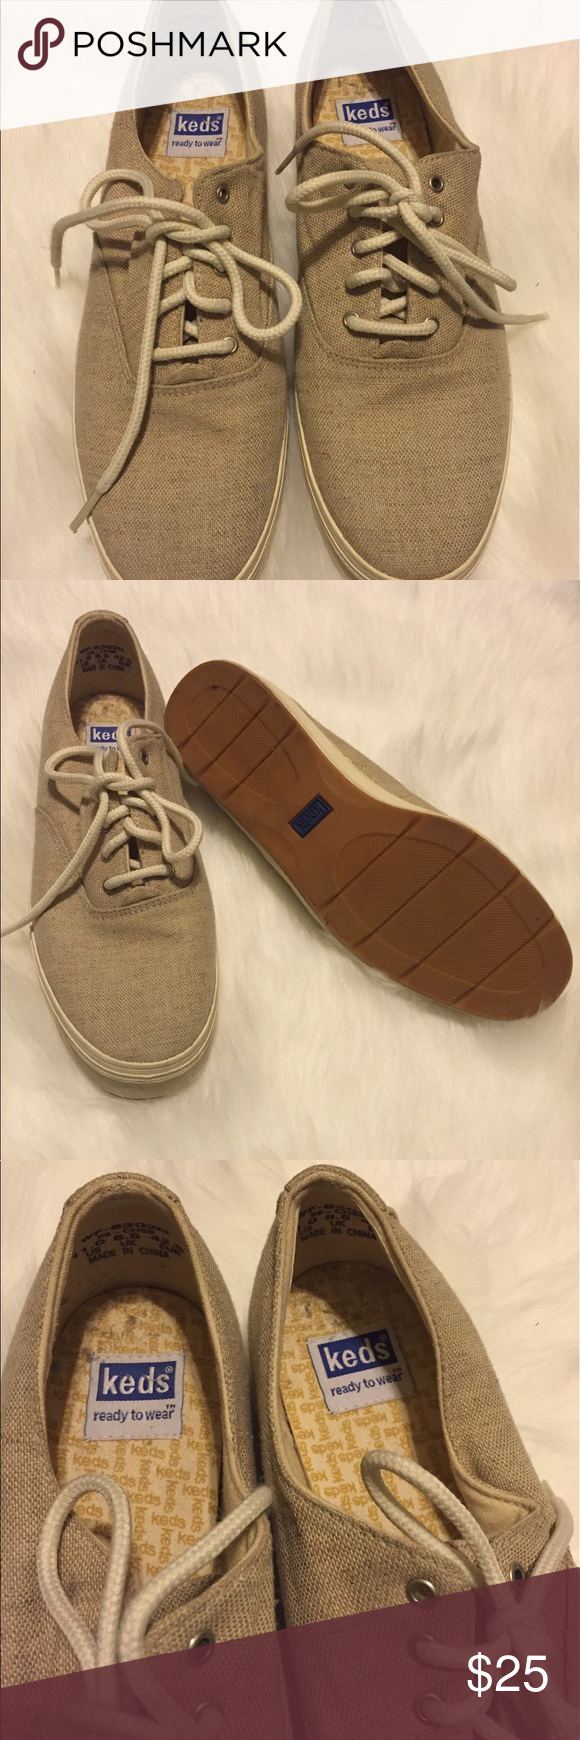 Keds Mens shoes In very good condition Keds Shoes